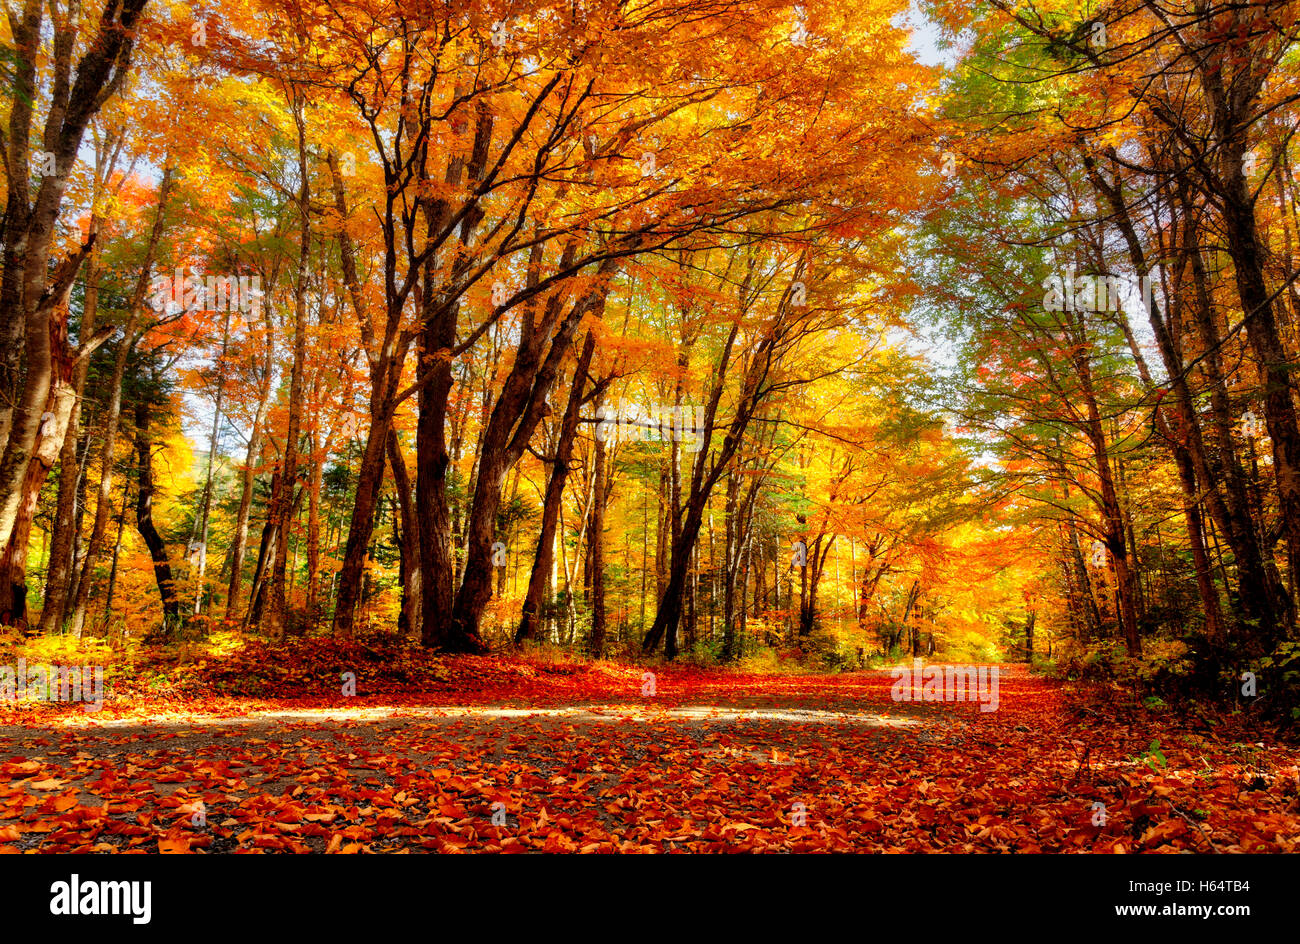 a-country-road-in-autumn-in-quebec-H64TB4.jpg